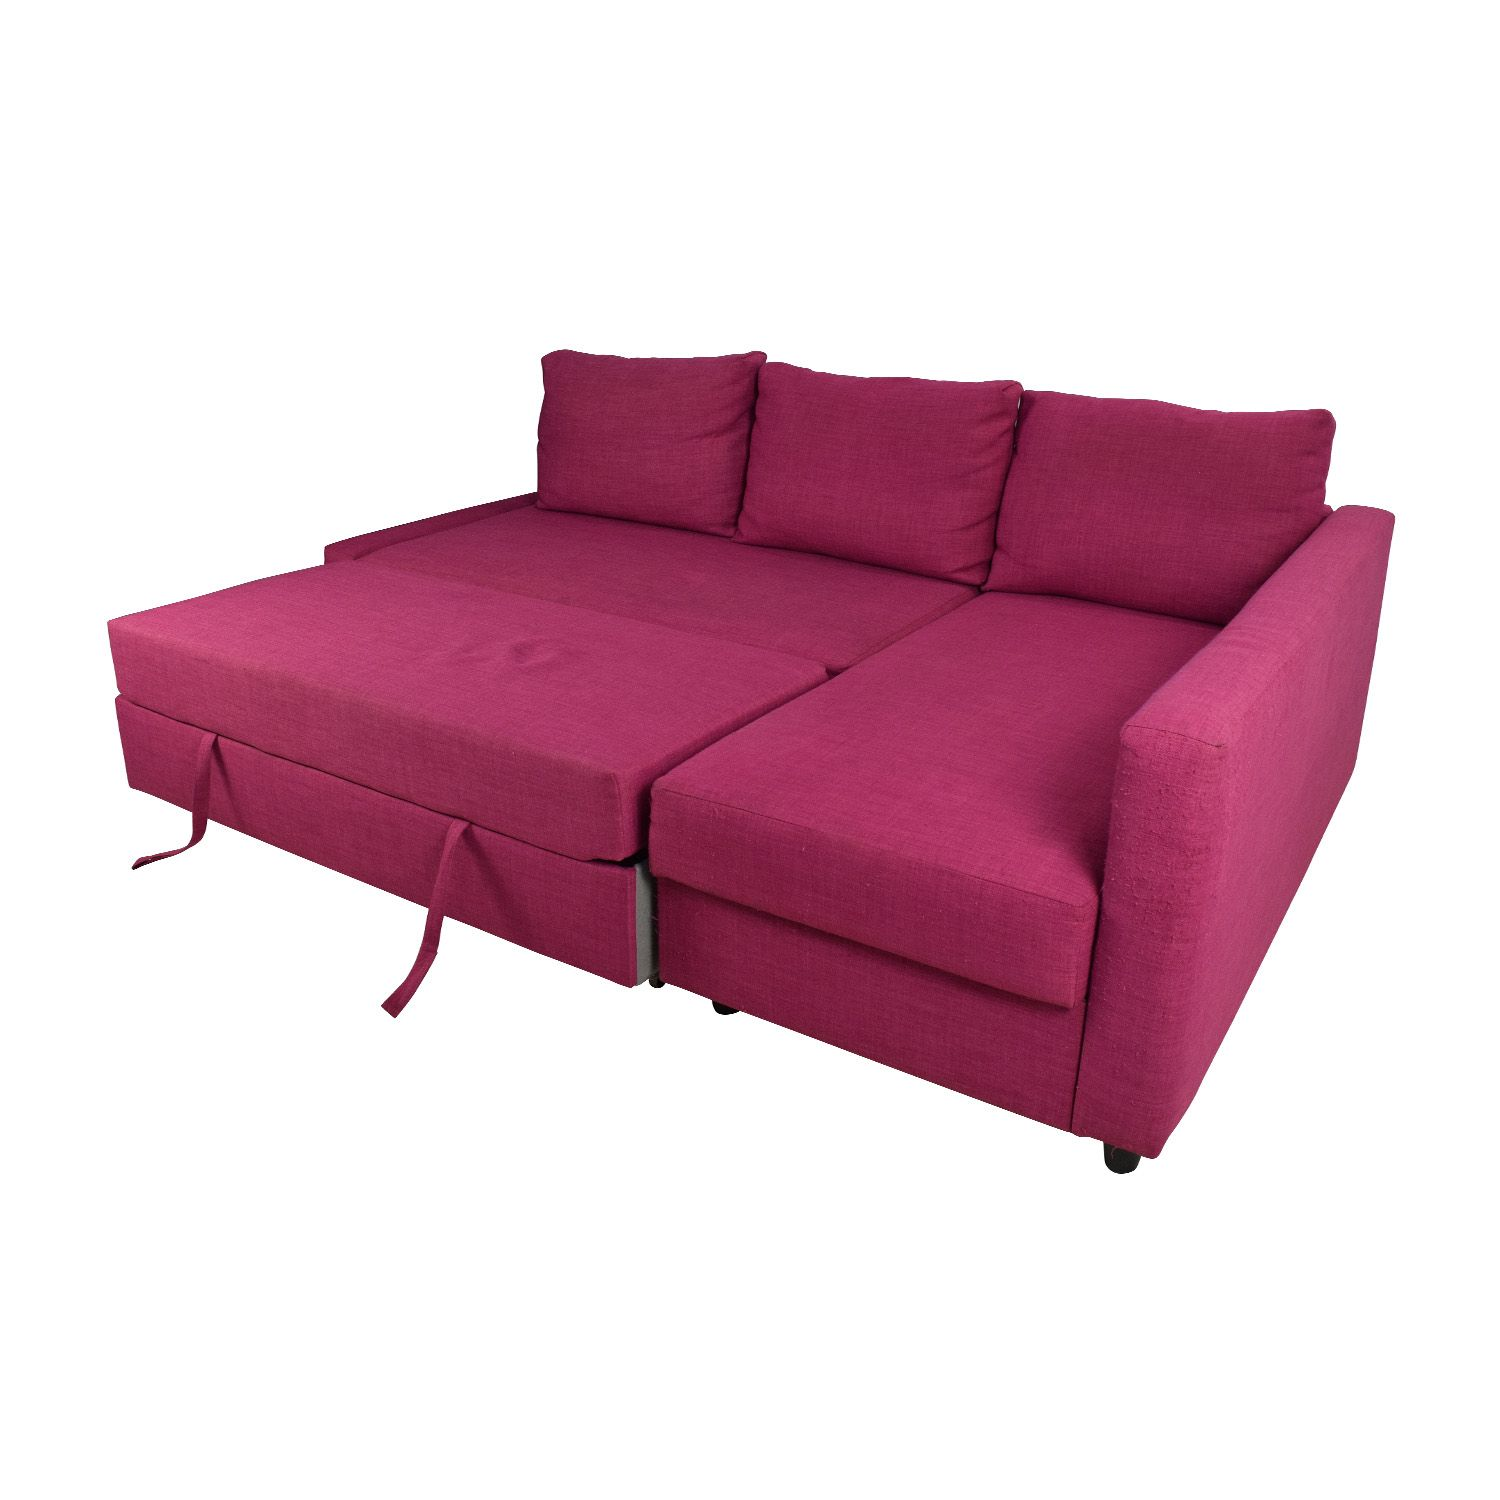 Cool Pink Sofa Sleeper , Outstanding Pink Sofa Sleeper 37 For Your Contemporary  Sofa Inspiration With Pink Sofa Sleeper ...